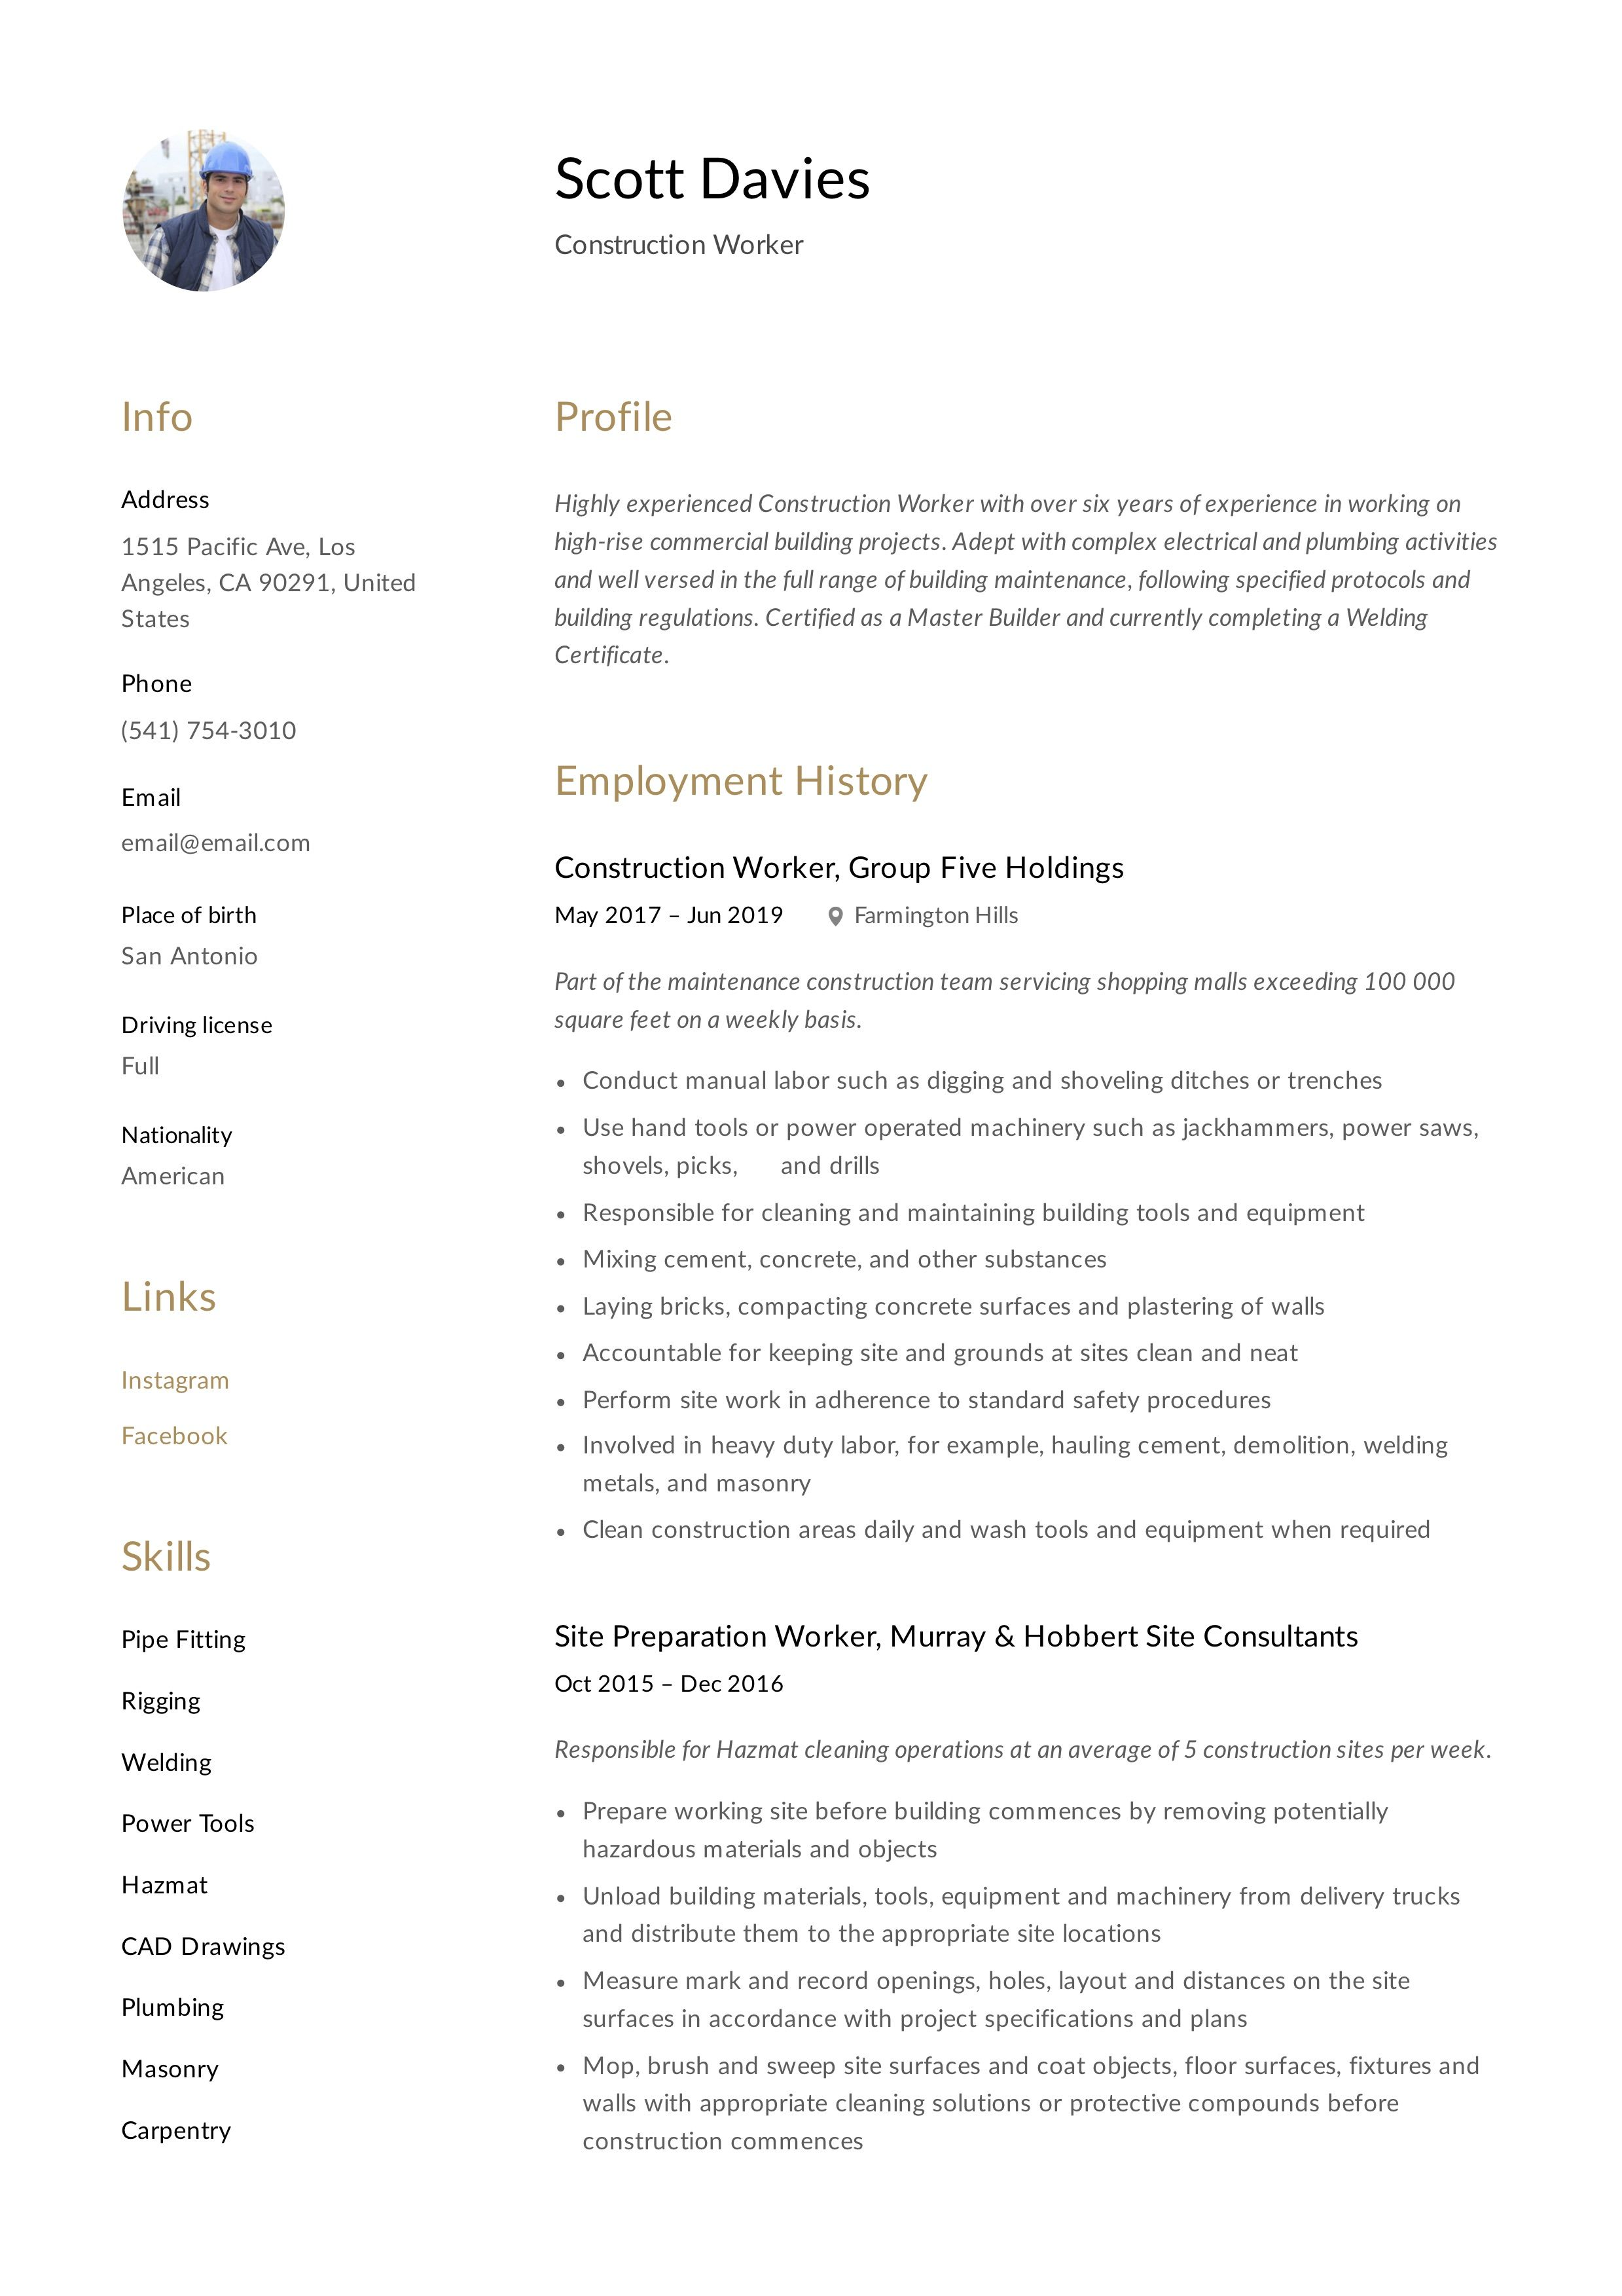 Construction Worker Resume Writing Guide In 2020 Guided